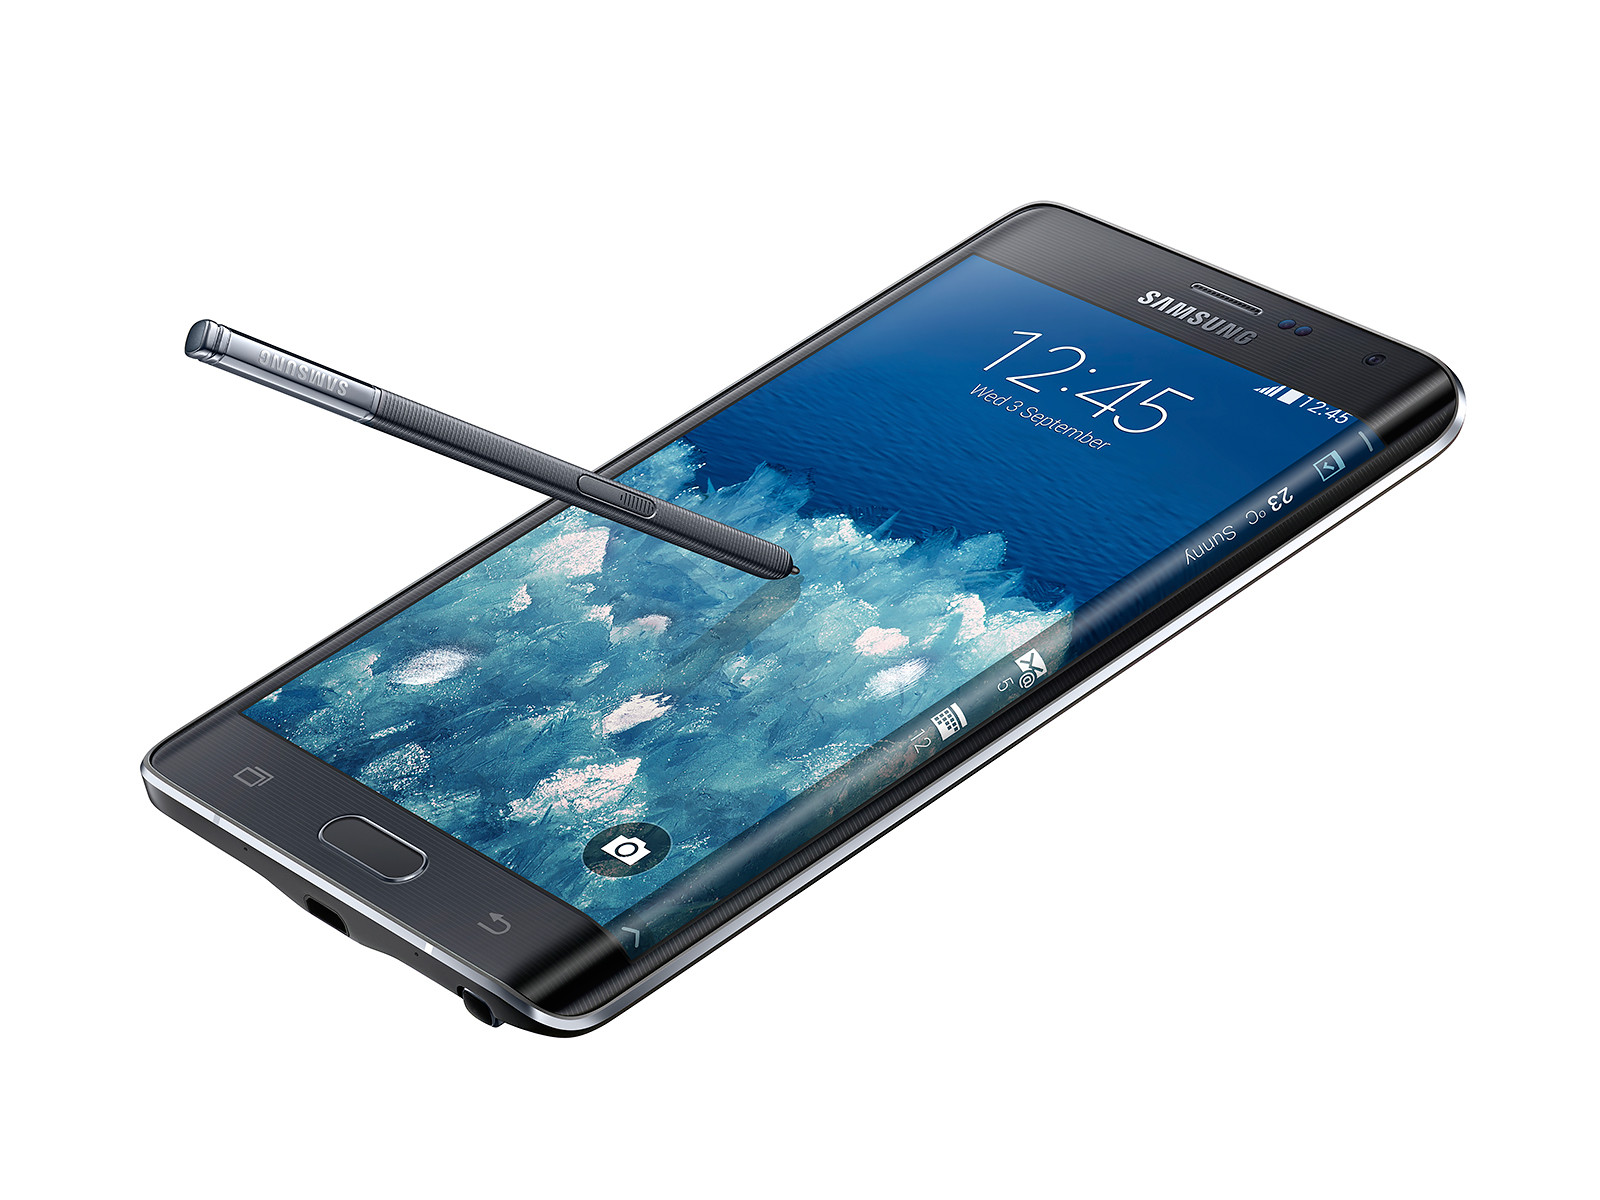 1409753058_a-phone-with-an-edge-samsung-galaxy-note-edge-with-curved-screen-is-official-19.jpg